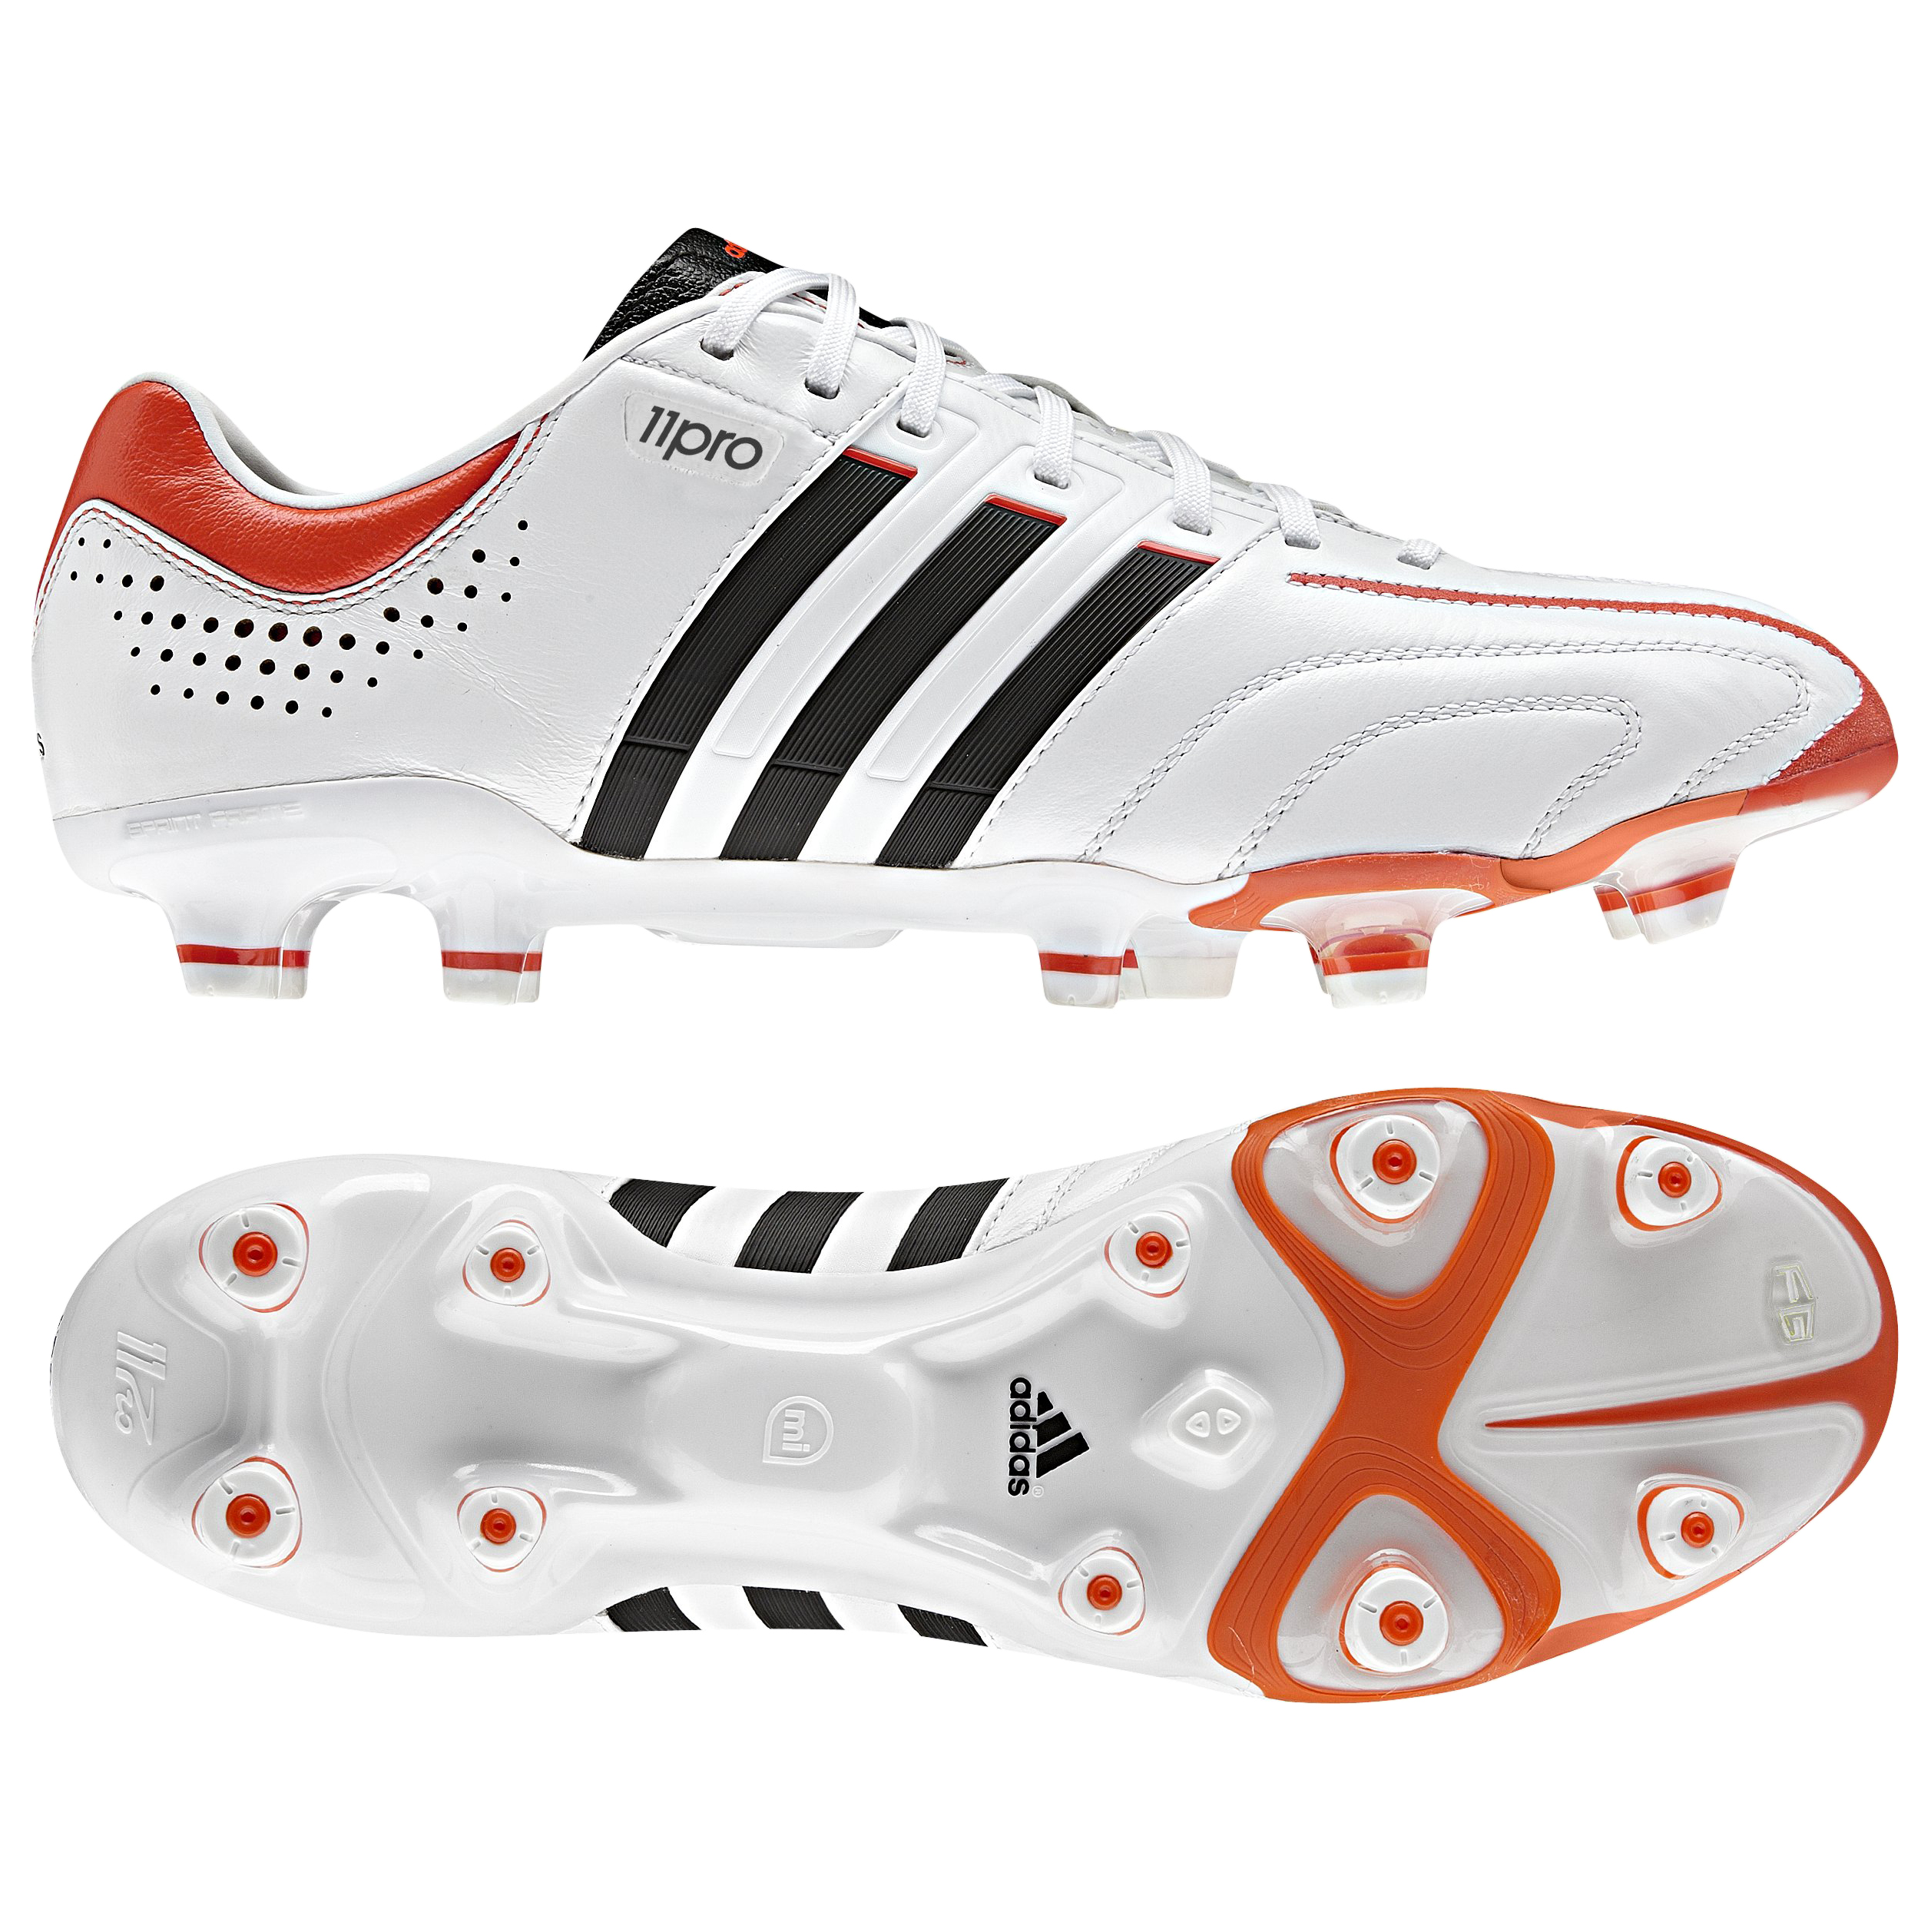 adidas adipure 11Pro XTRX Firm Ground Football Boots - Running White/Black 1/High Energy S12